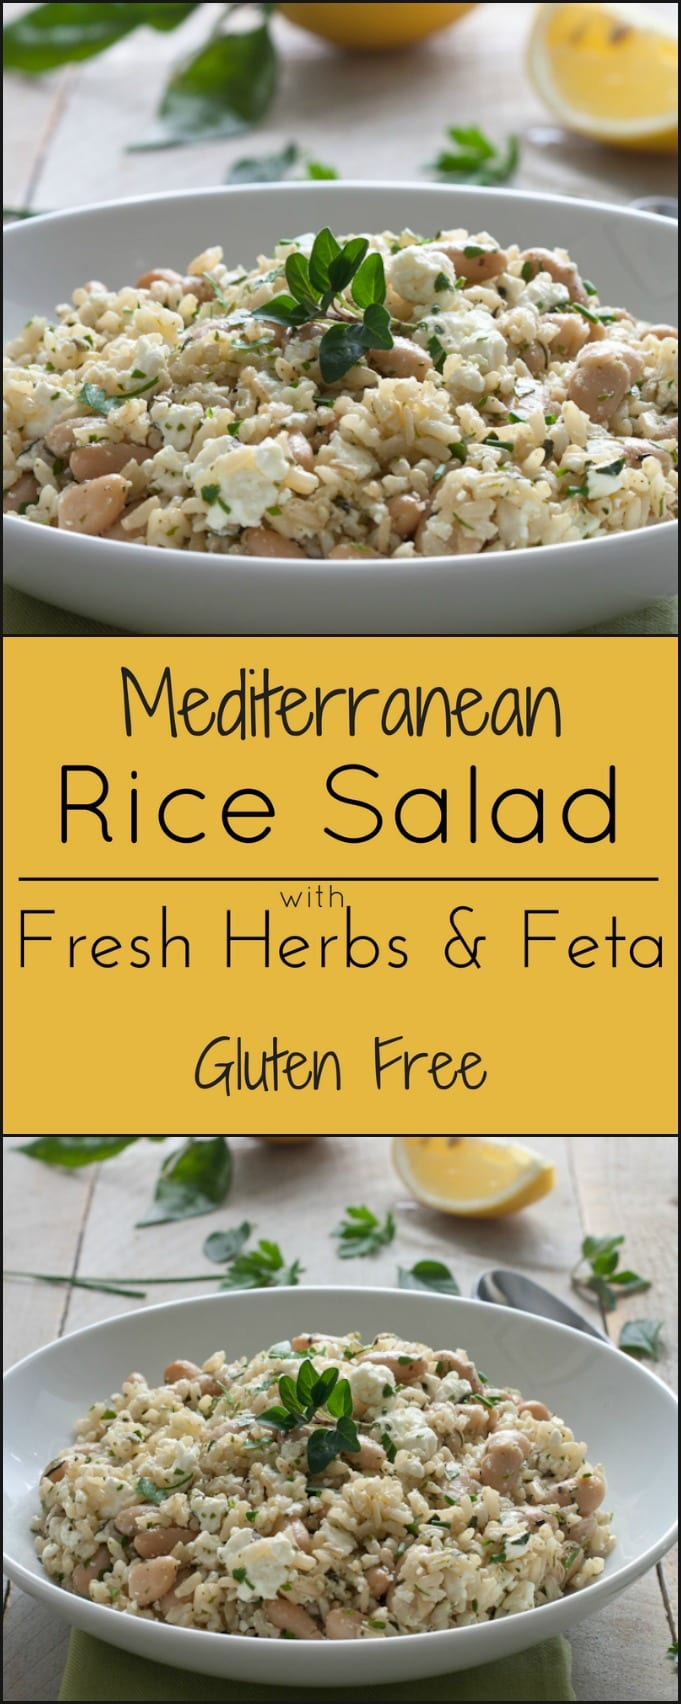 Gluten free summer side dish, Mediterranean Rice Salad with Feta and Fresh herbs.